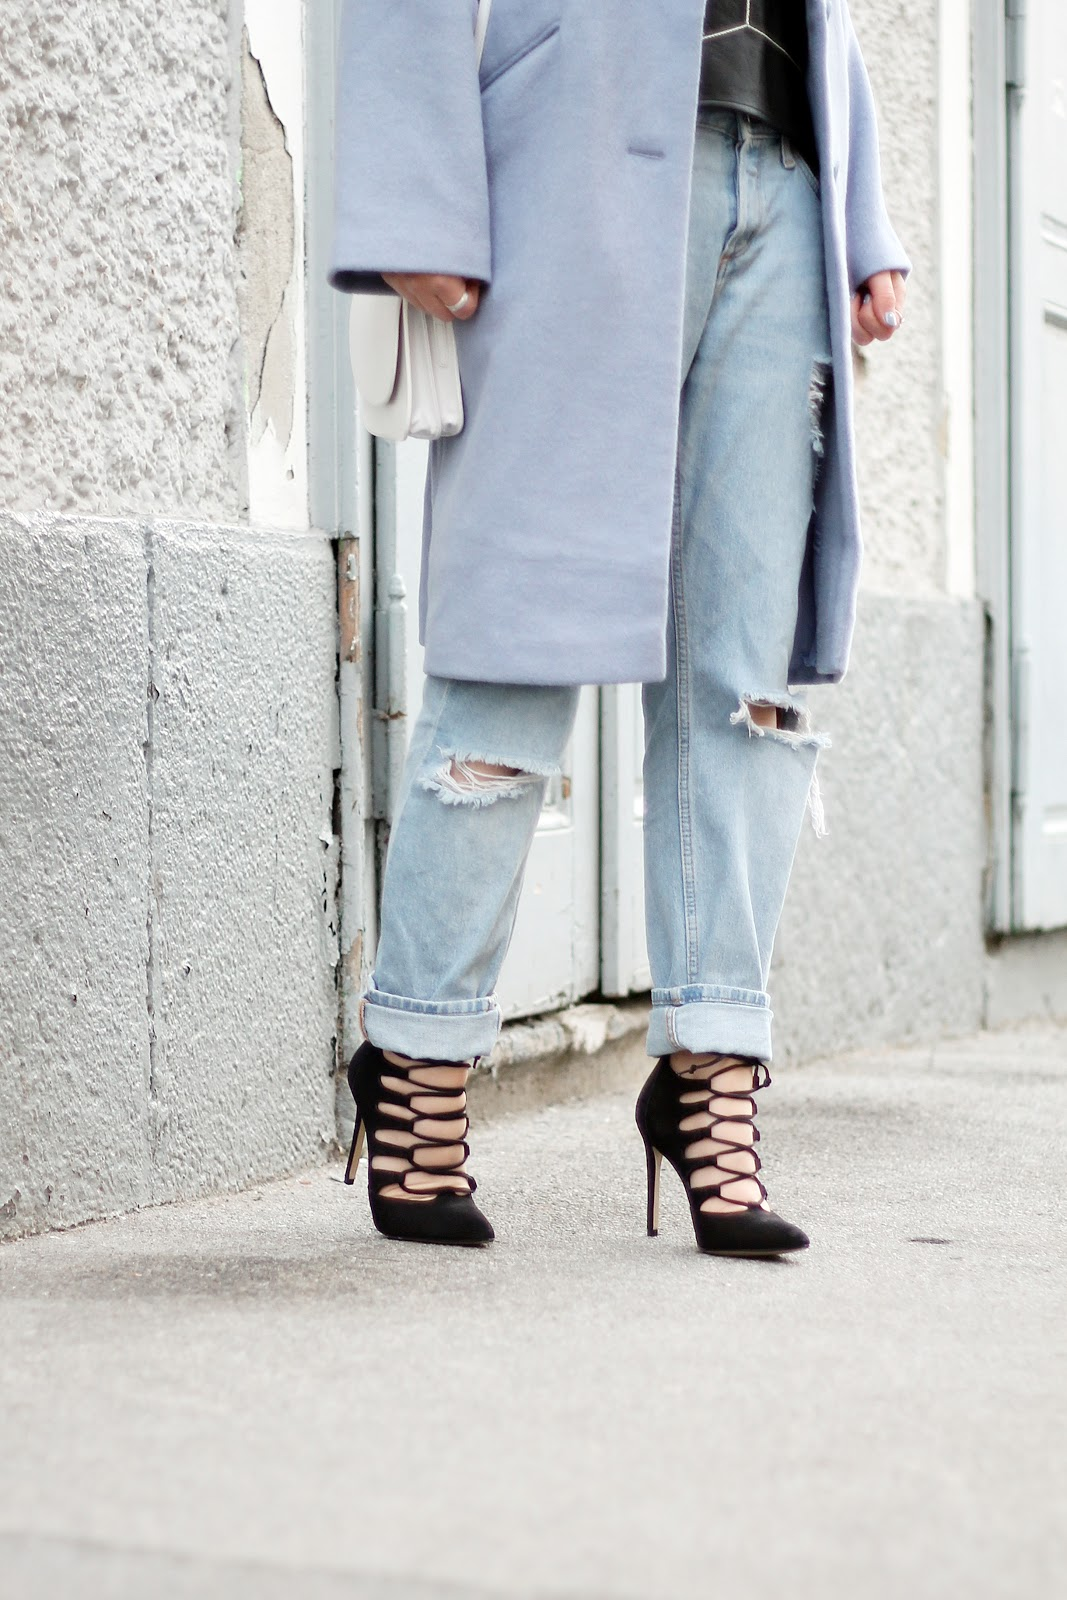 boyfriend jeans and lace up heels